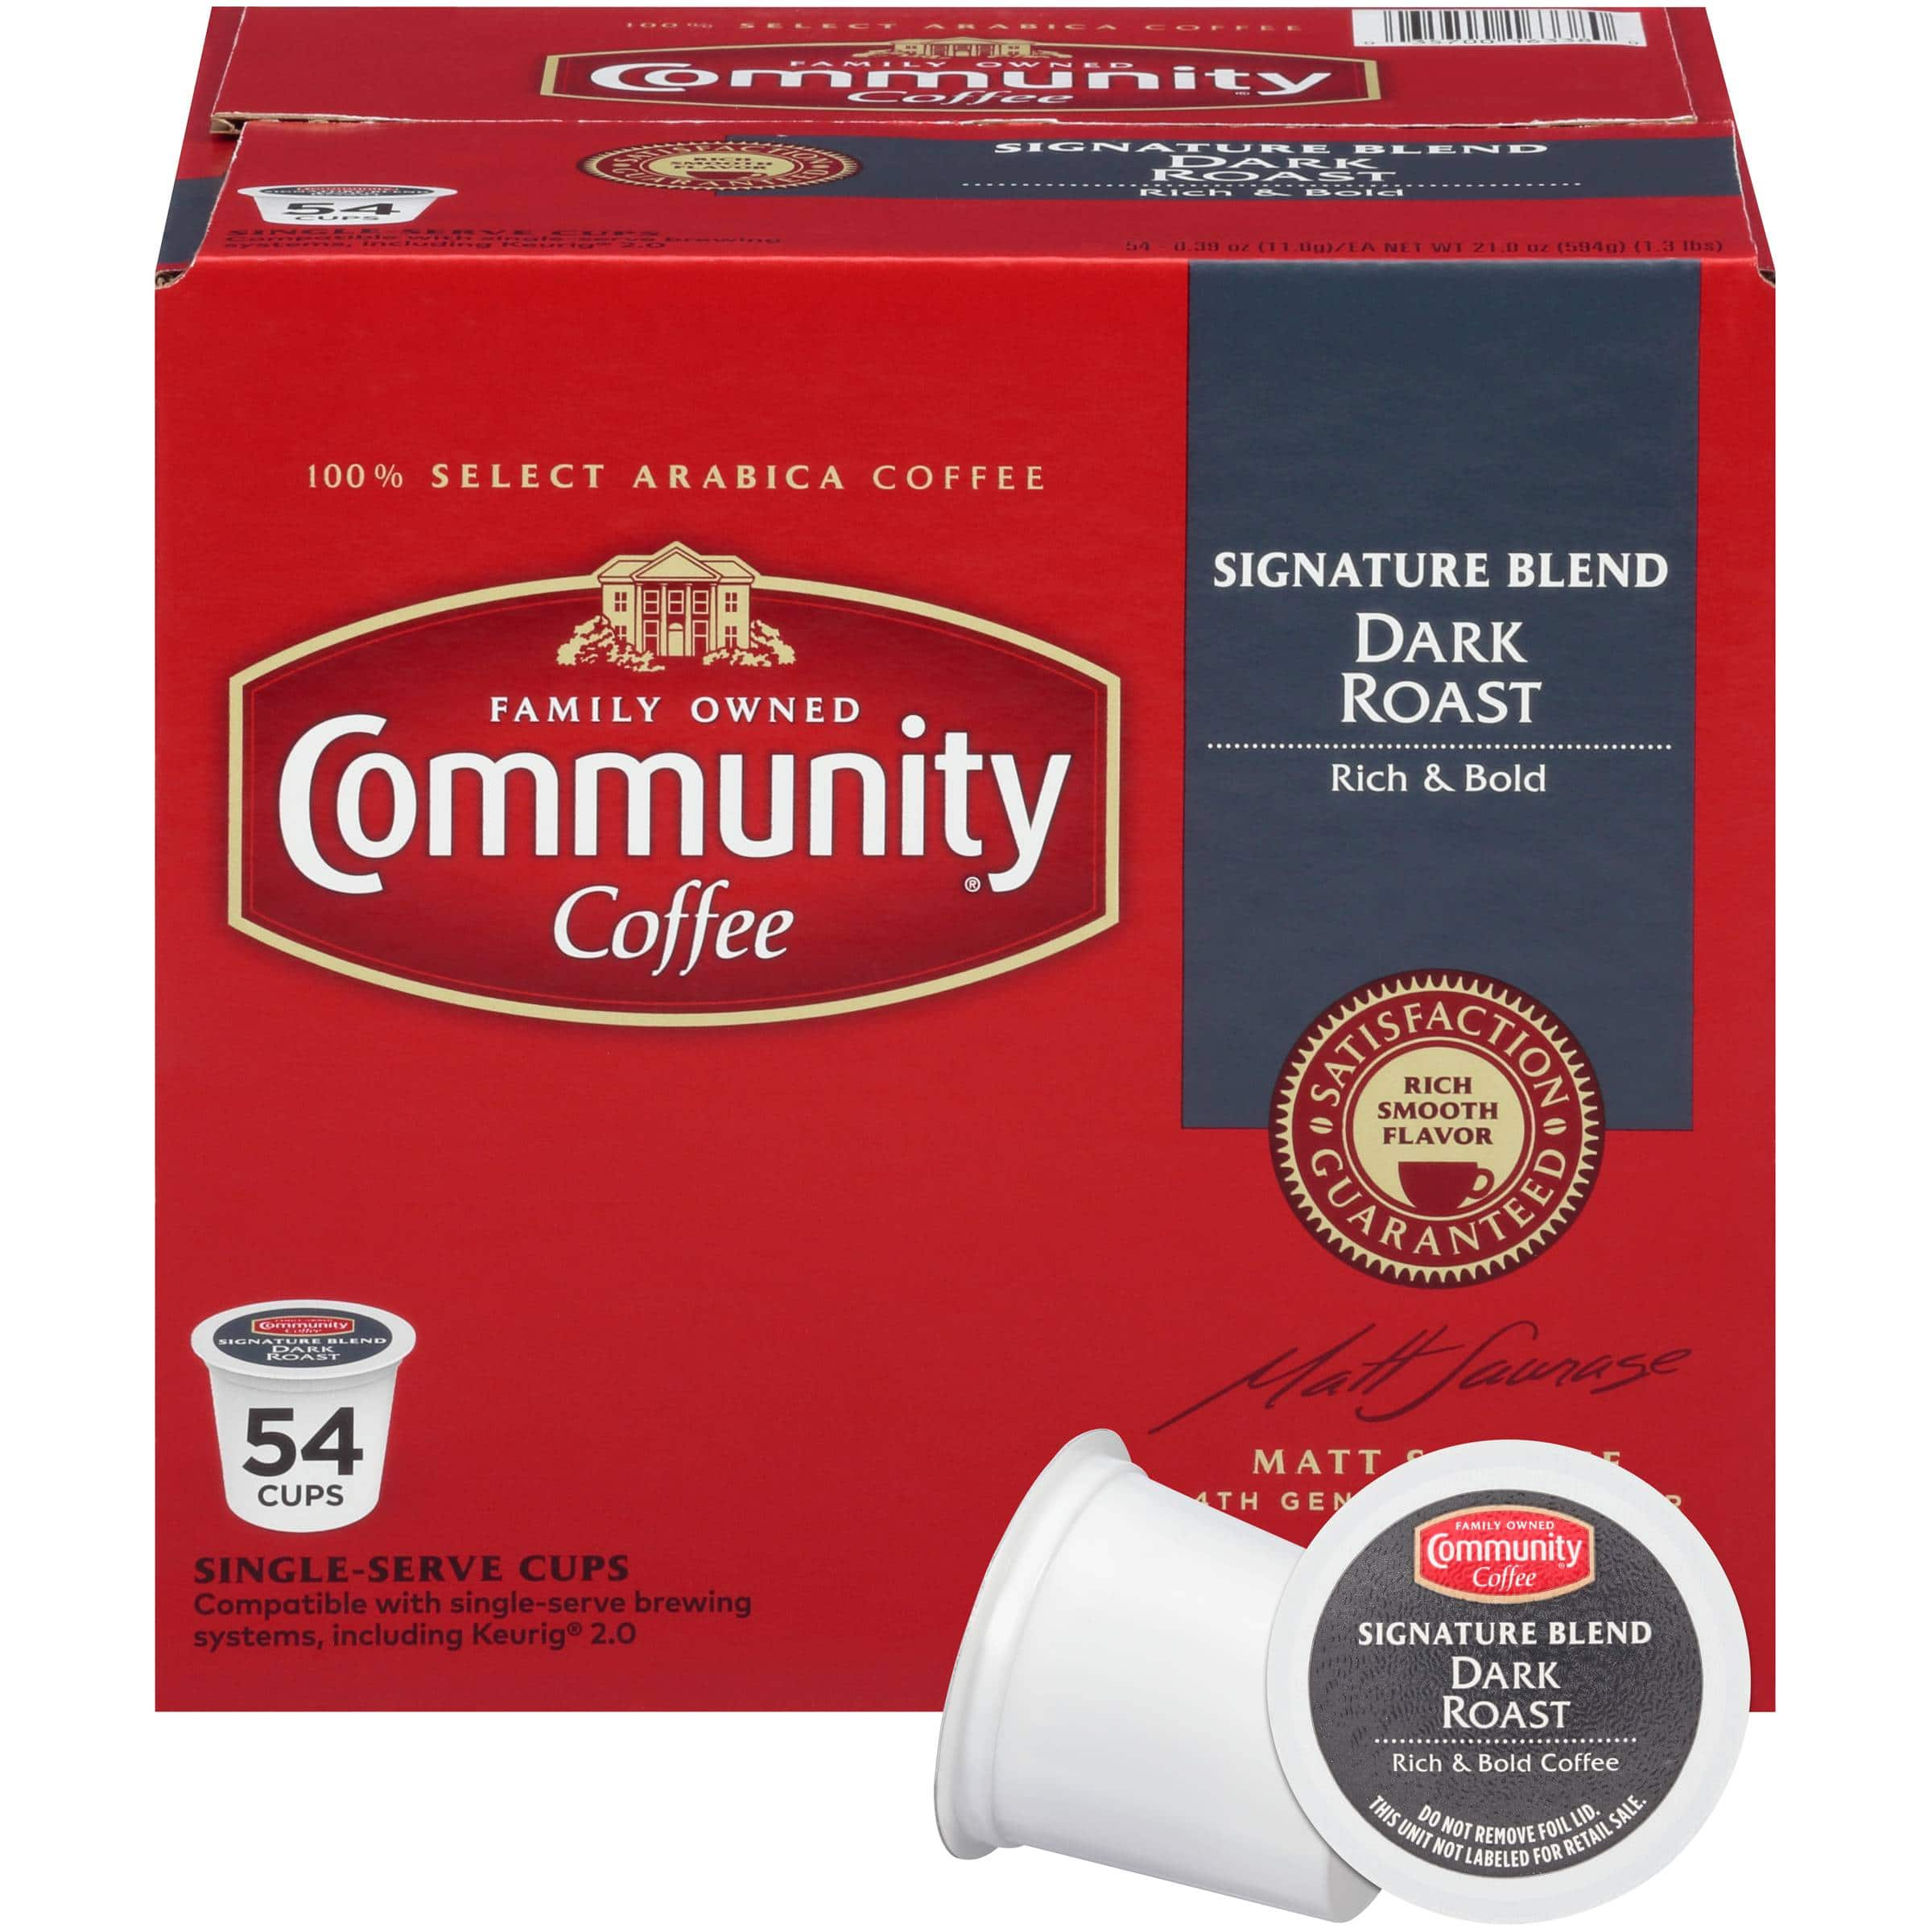 33% Off Community Coffee Signature Dark Roast 54 Count Single Serve Cups FOR CYBER MONDAY + Free Shipping for $19.99 Lightning deal ends at 10:25pm PST